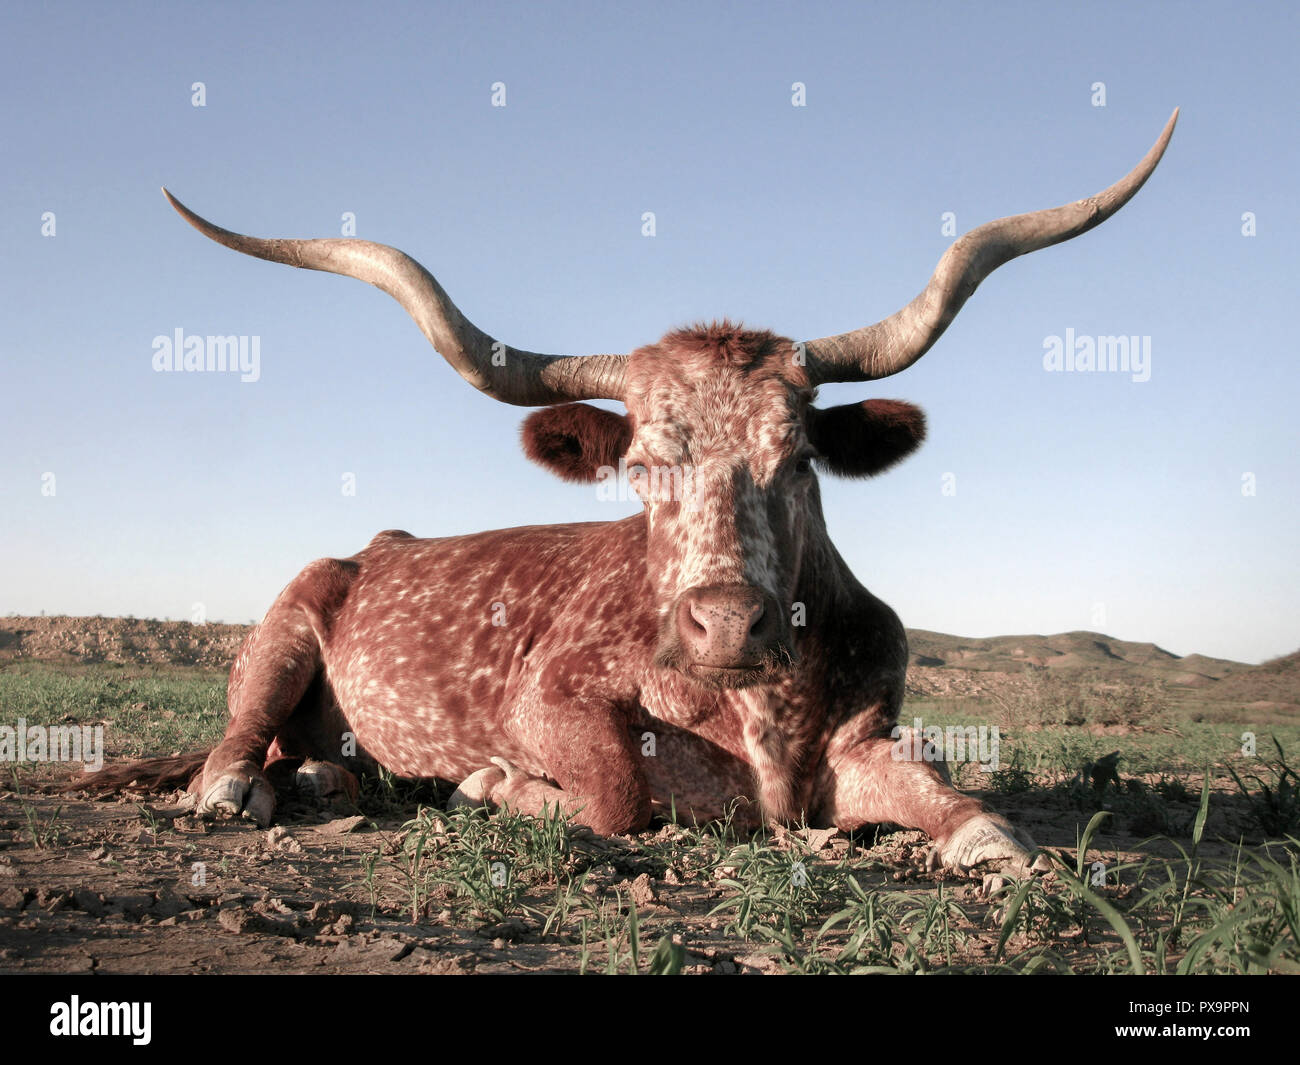 Young Texas Longhorn cow resting on a ranch in Southwest Texas. - Stock Image